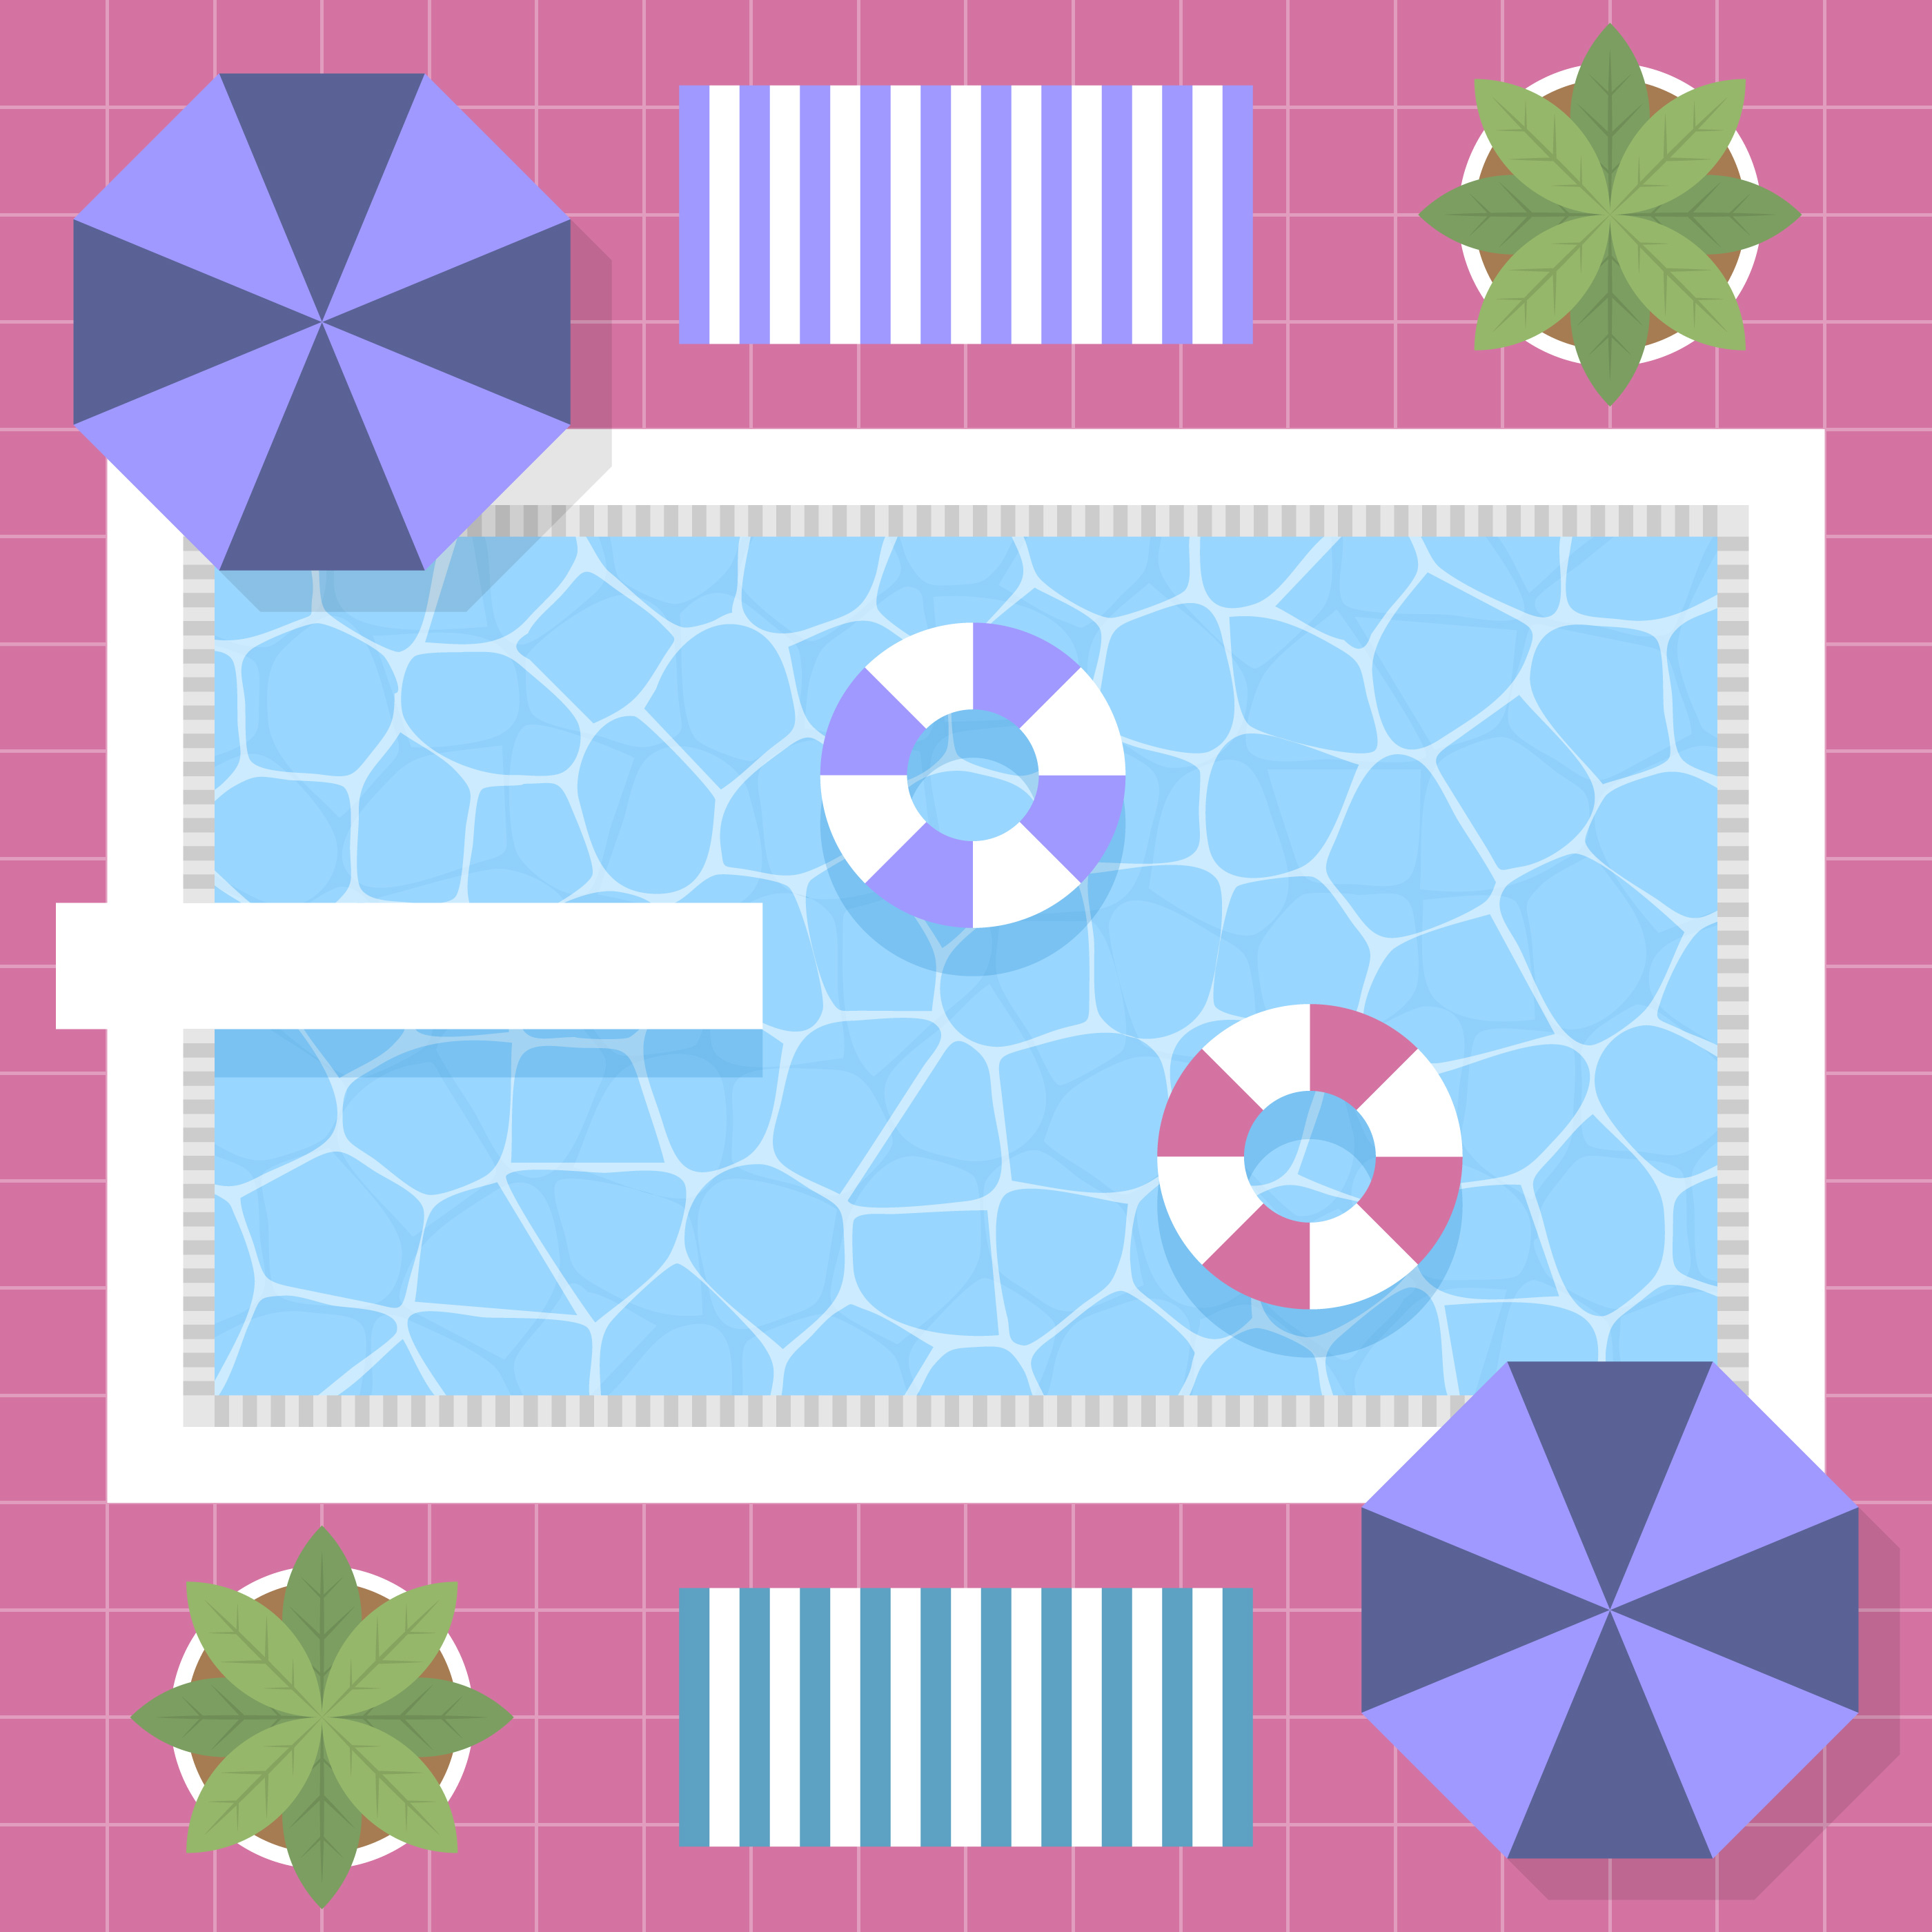 80s style vintage graphic swimming pool top view design